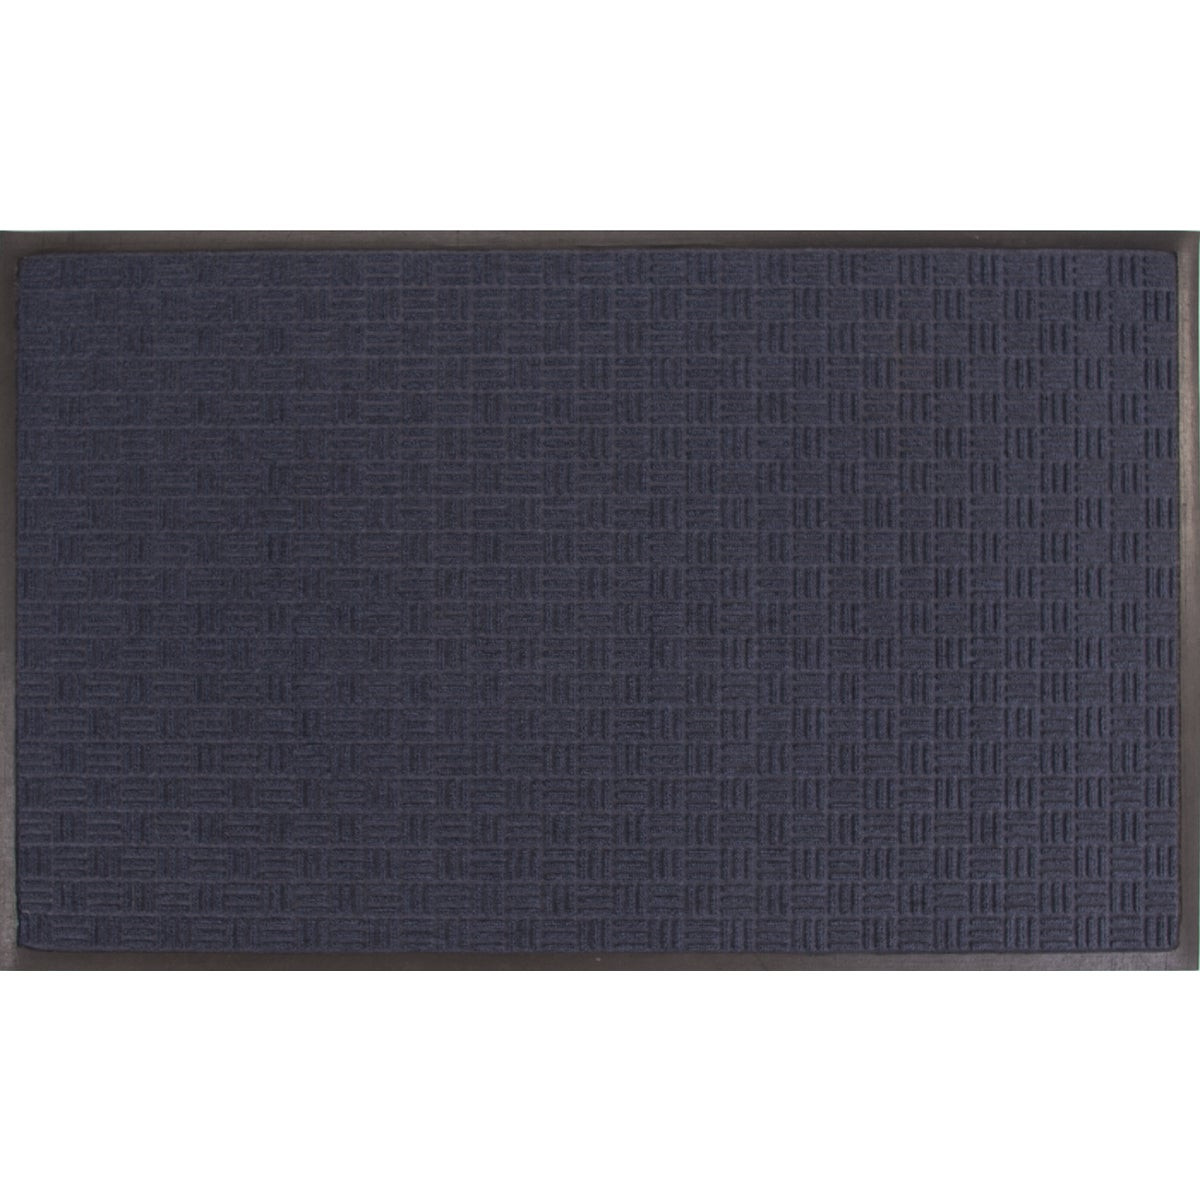 12X36 GATE BLUE DOOR MAT